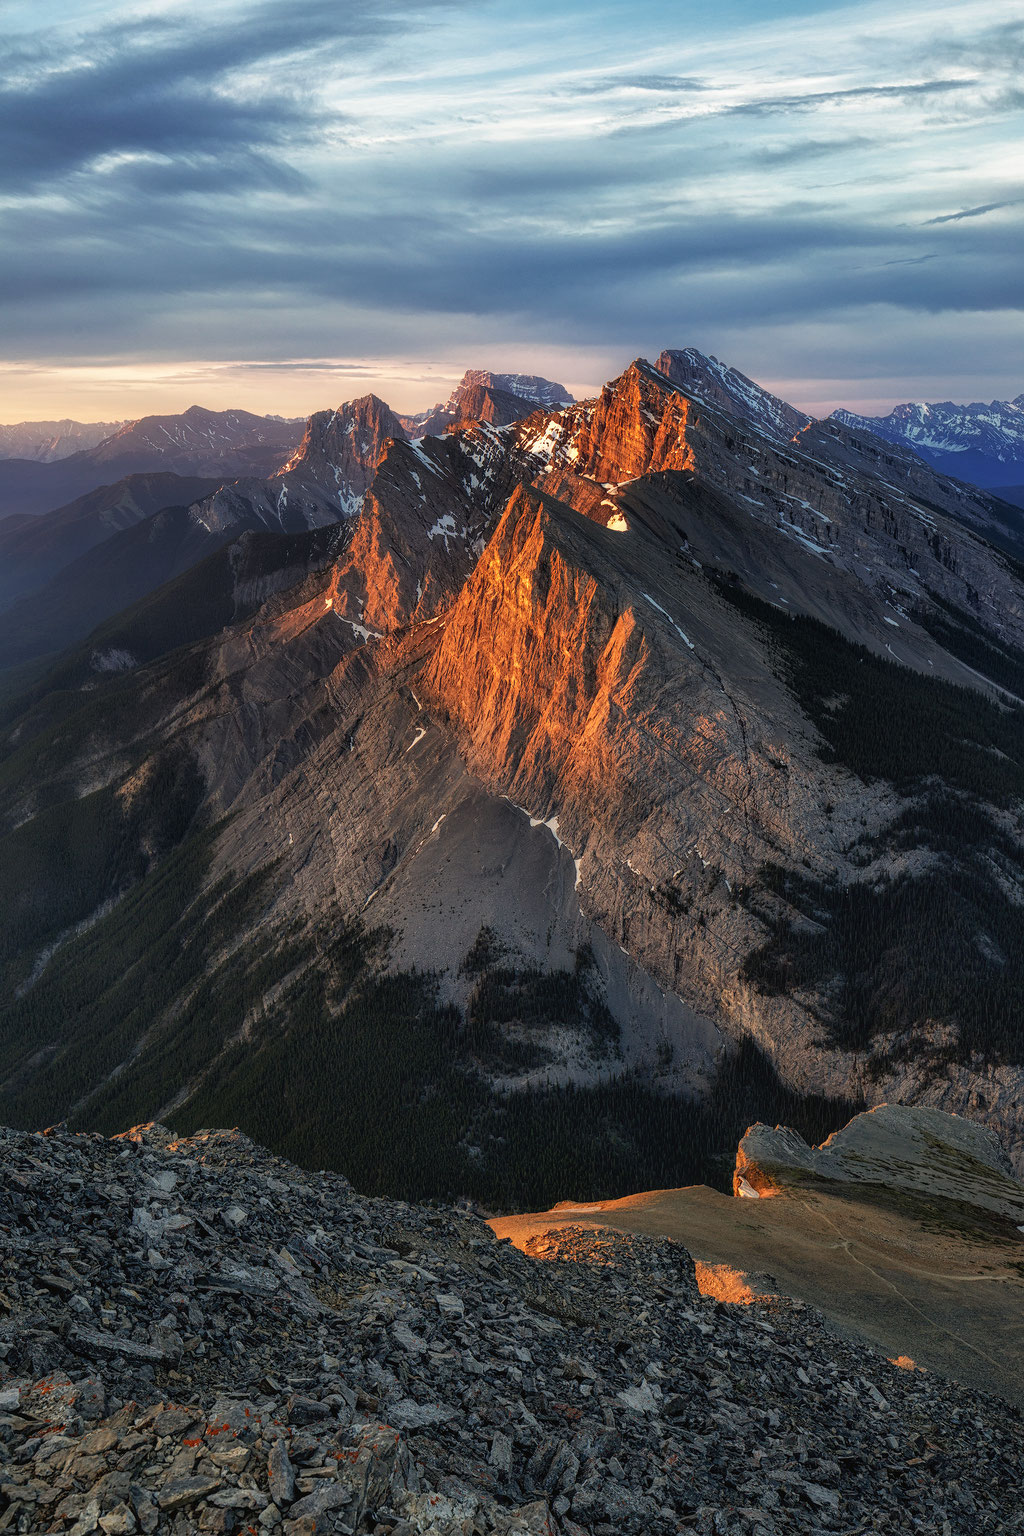 Ha Ling Peak at sunrise viewed from the East End of Mount Rundle